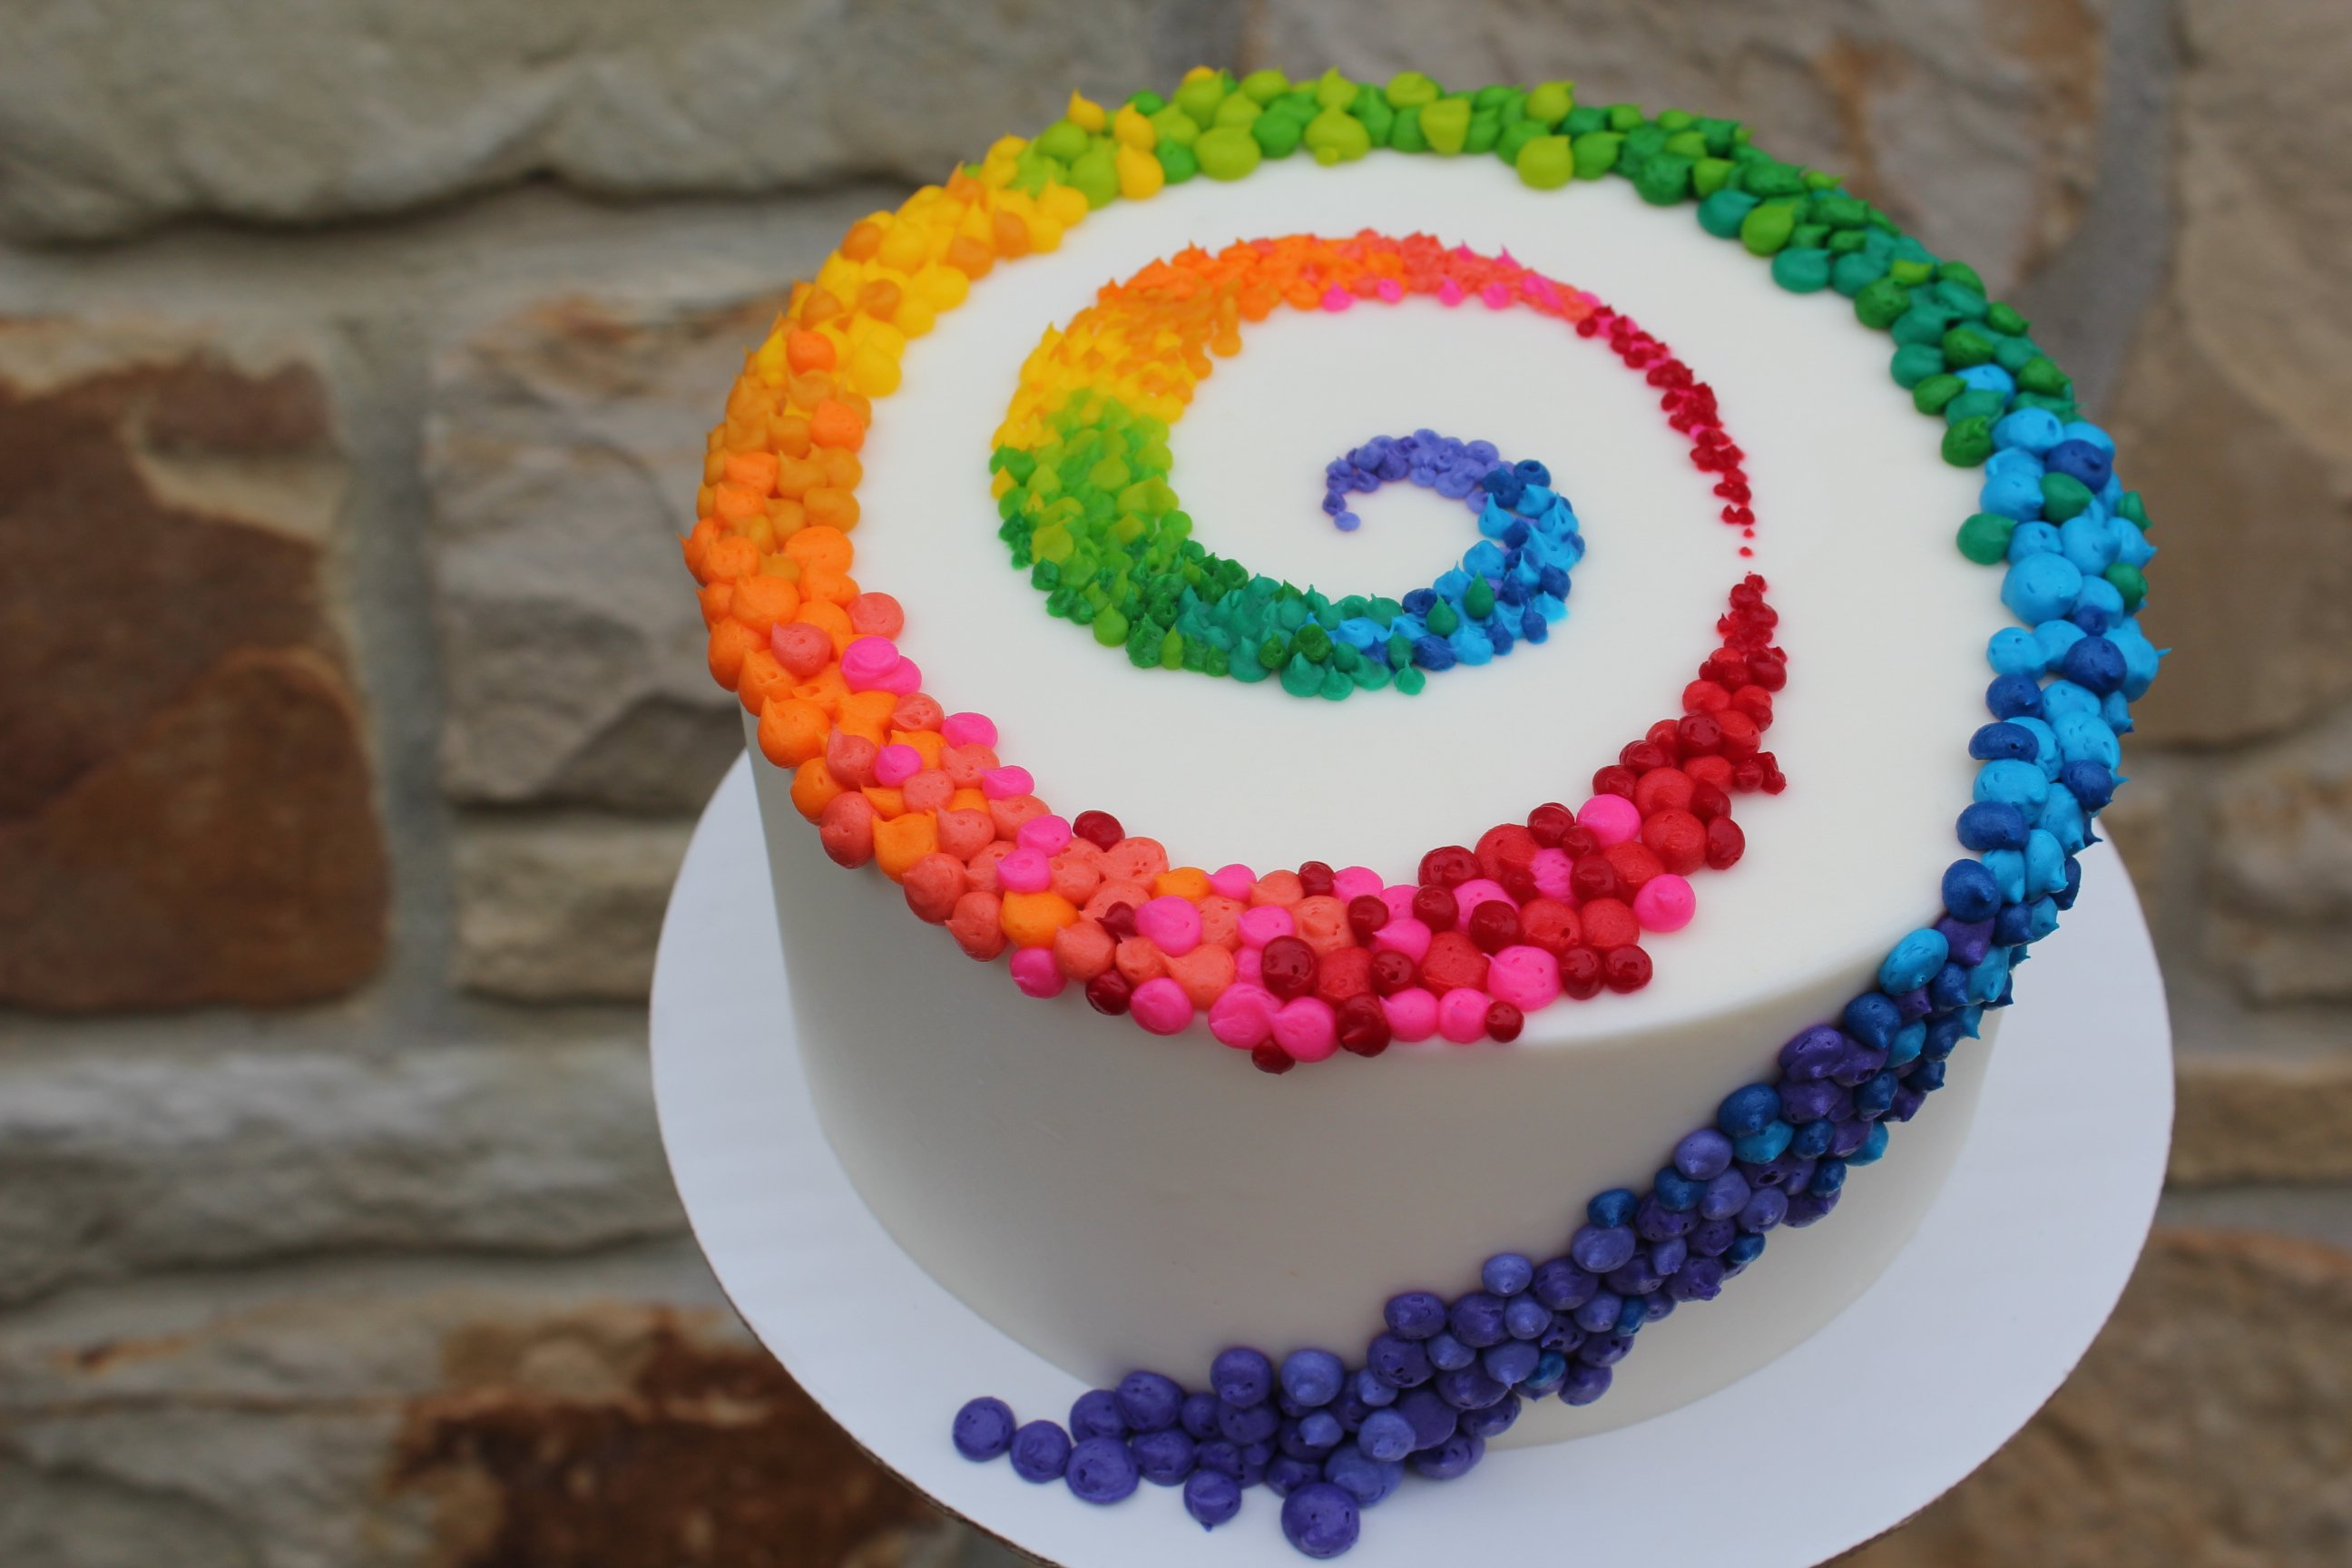 15 Rainbow Cakes That Look Too Perfect To Eat